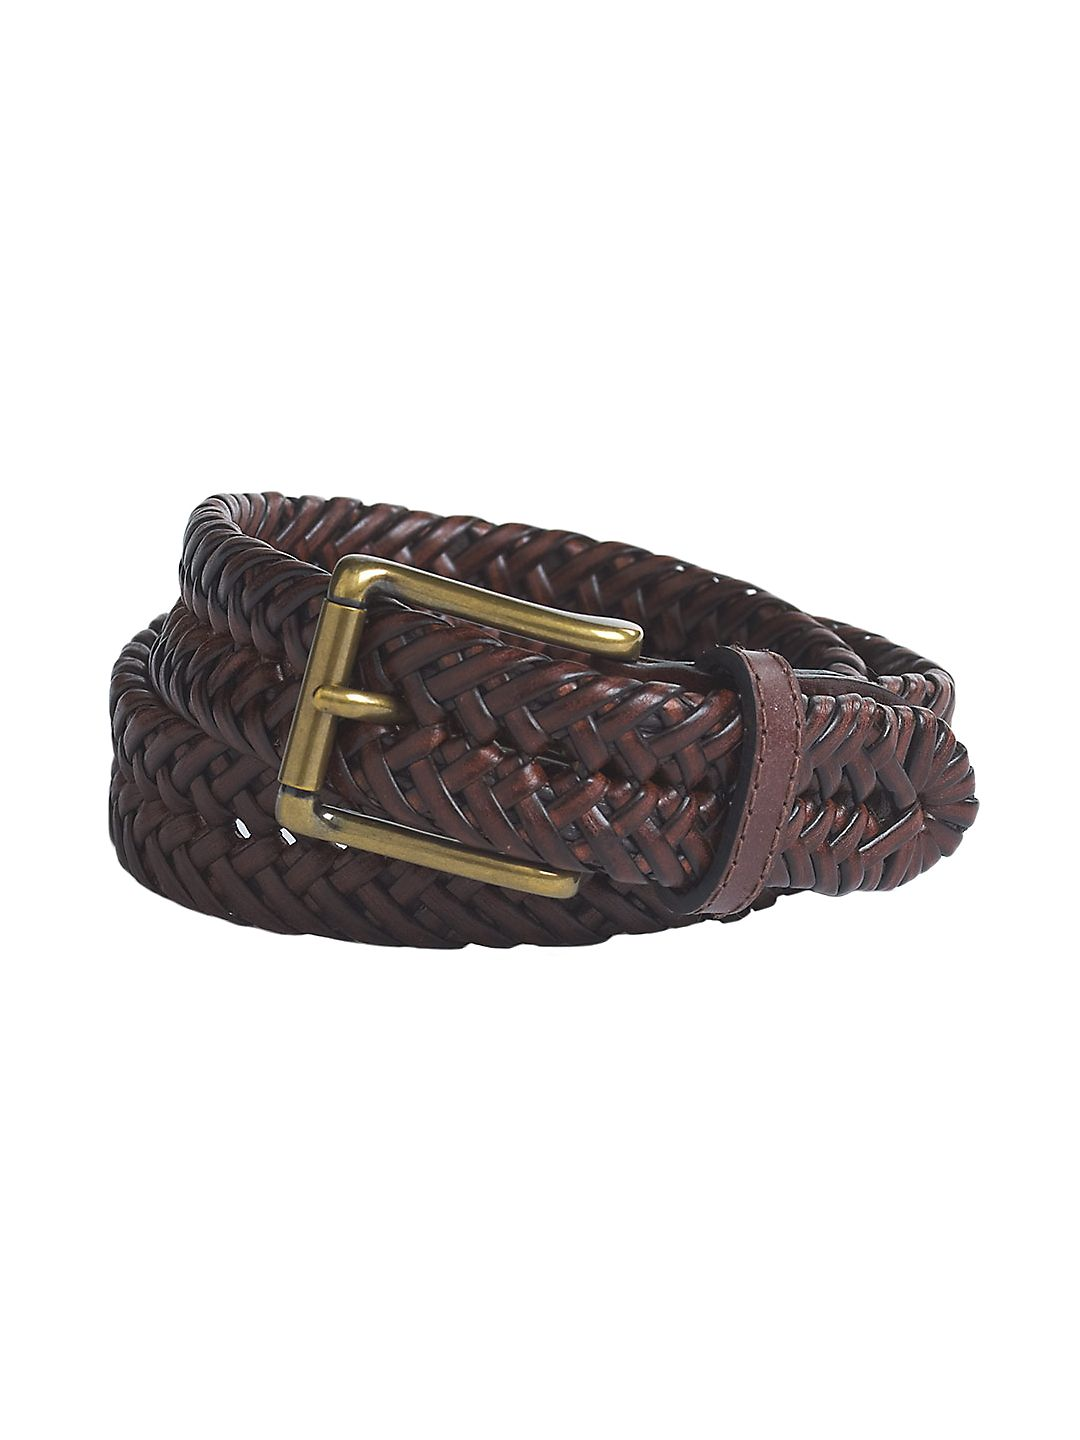 Boy's Braided Leather Belt